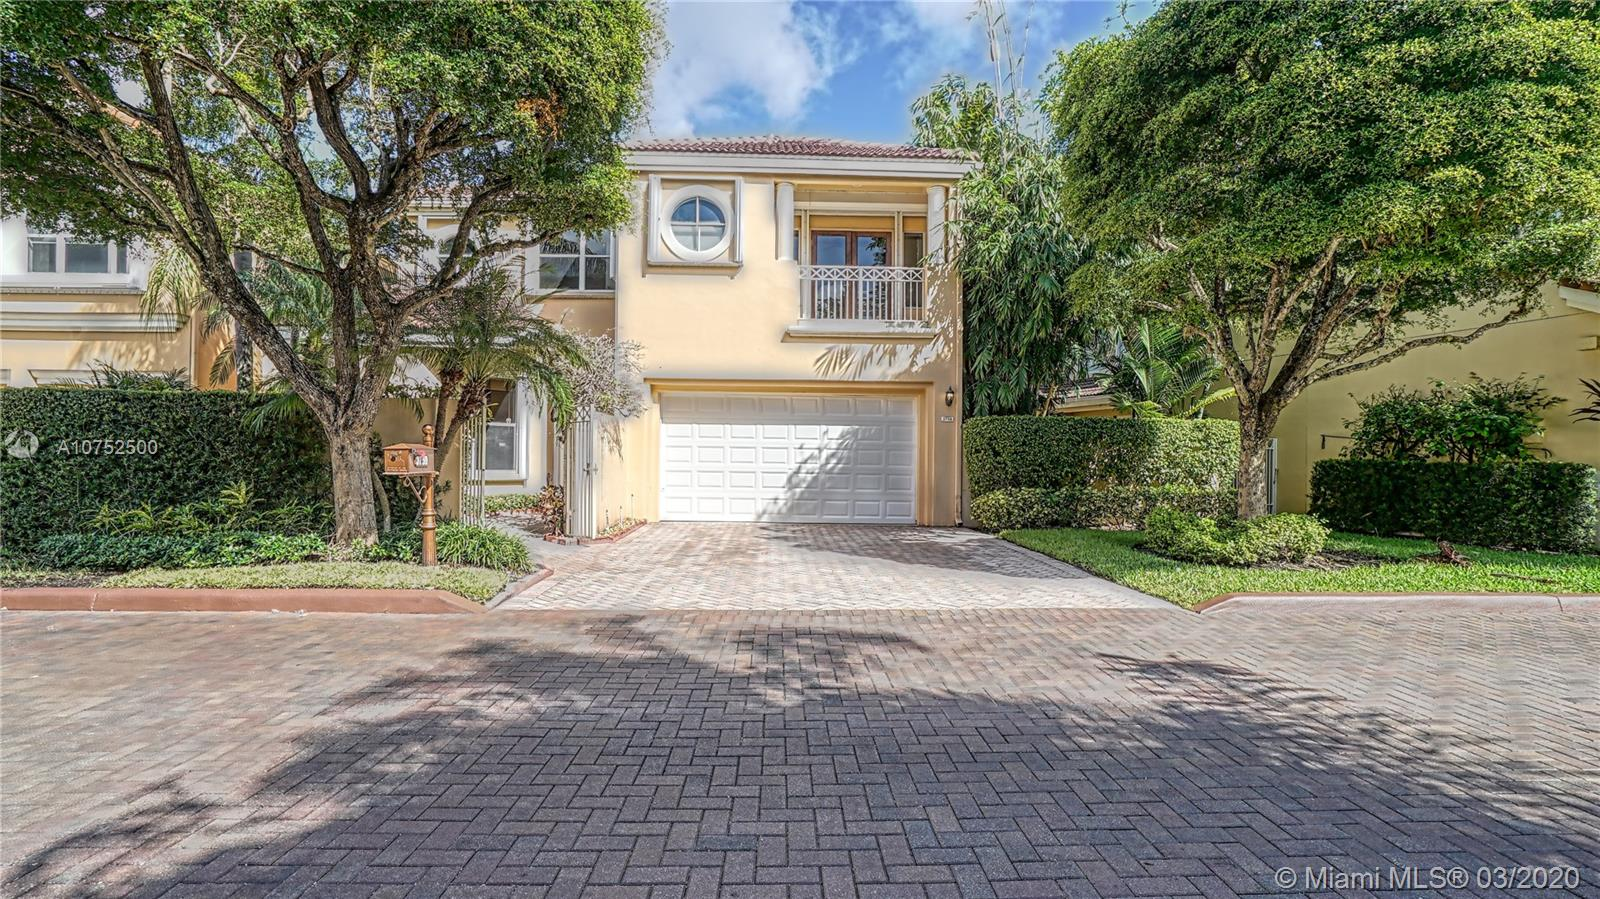 3759 NE 207th Terr  For Sale A10752500, FL